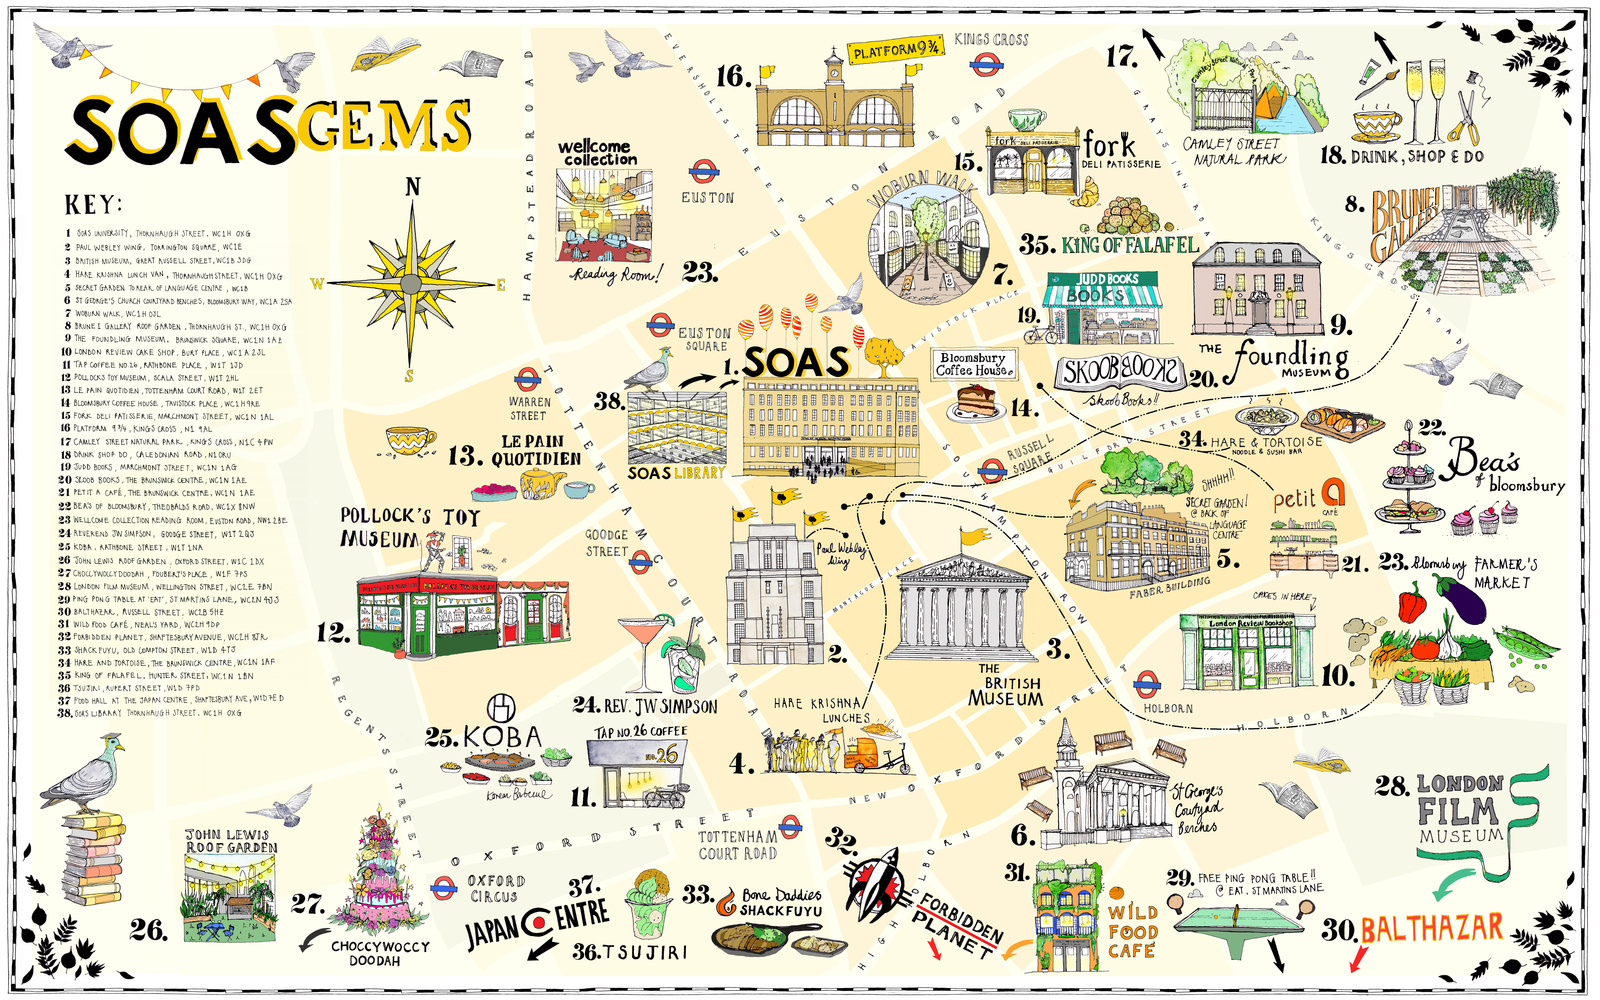 Bloomsbury illustrated map by Katherine Kannon